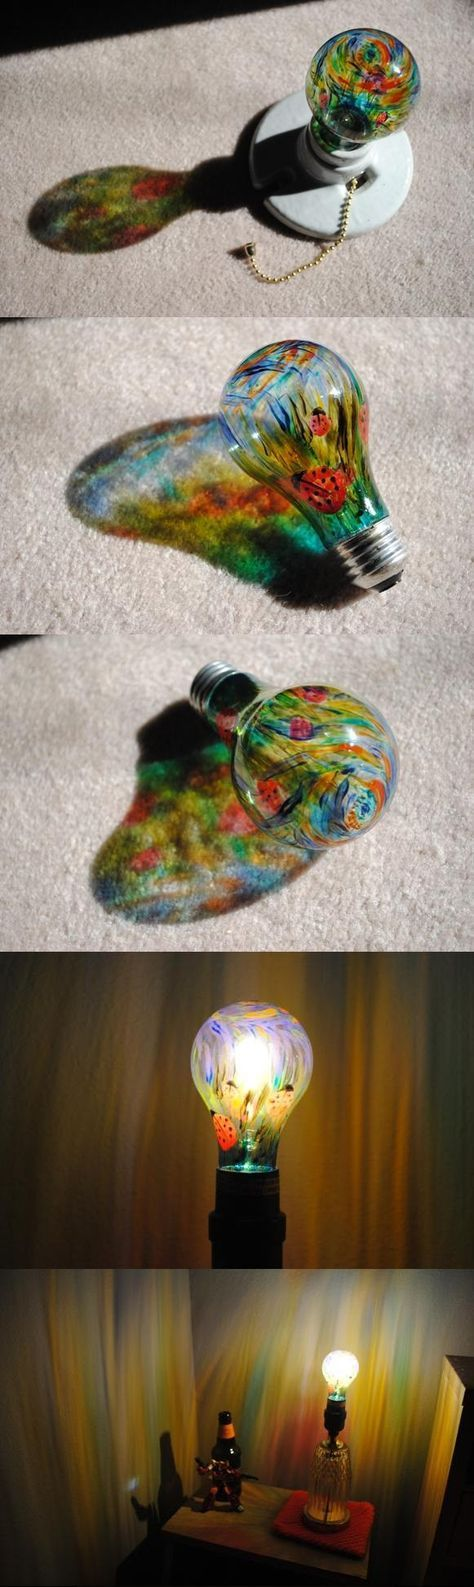 painted Lightbulb...this is freaking awesome